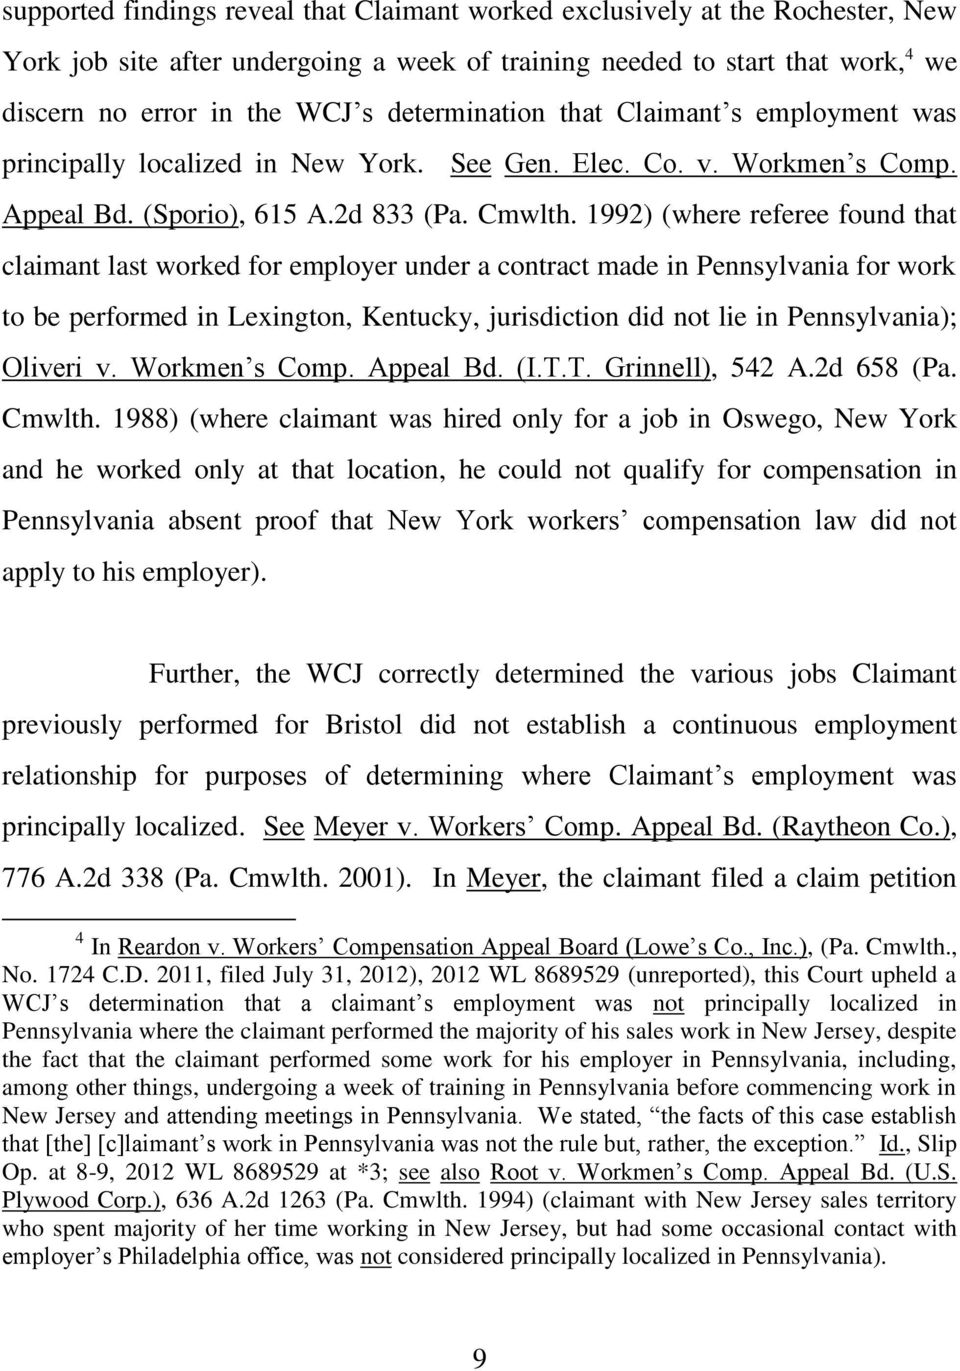 1992) (where referee found that claimant last worked for employer under a contract made in Pennsylvania for work to be performed in Lexington, Kentucky, jurisdiction did not lie in Pennsylvania);